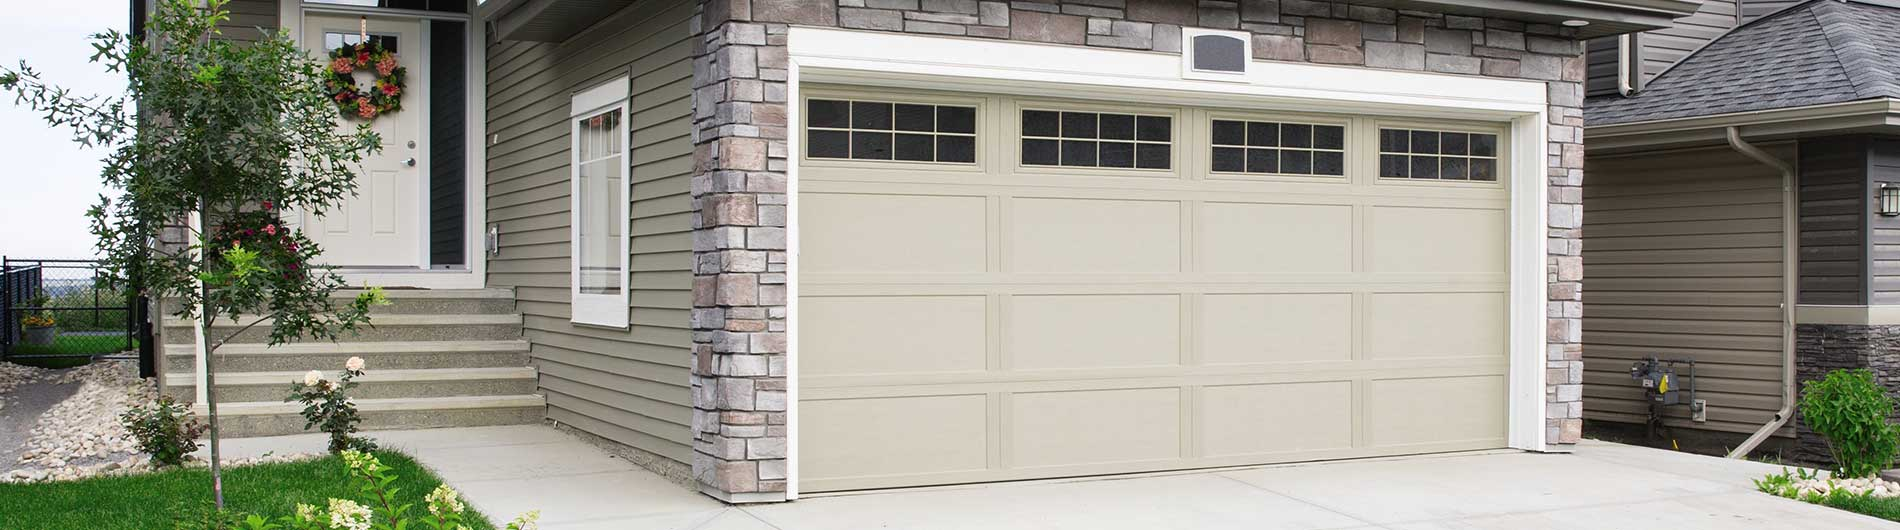 21 wayne dalton garage door 9600 decor23 Wayne dalton garage doors